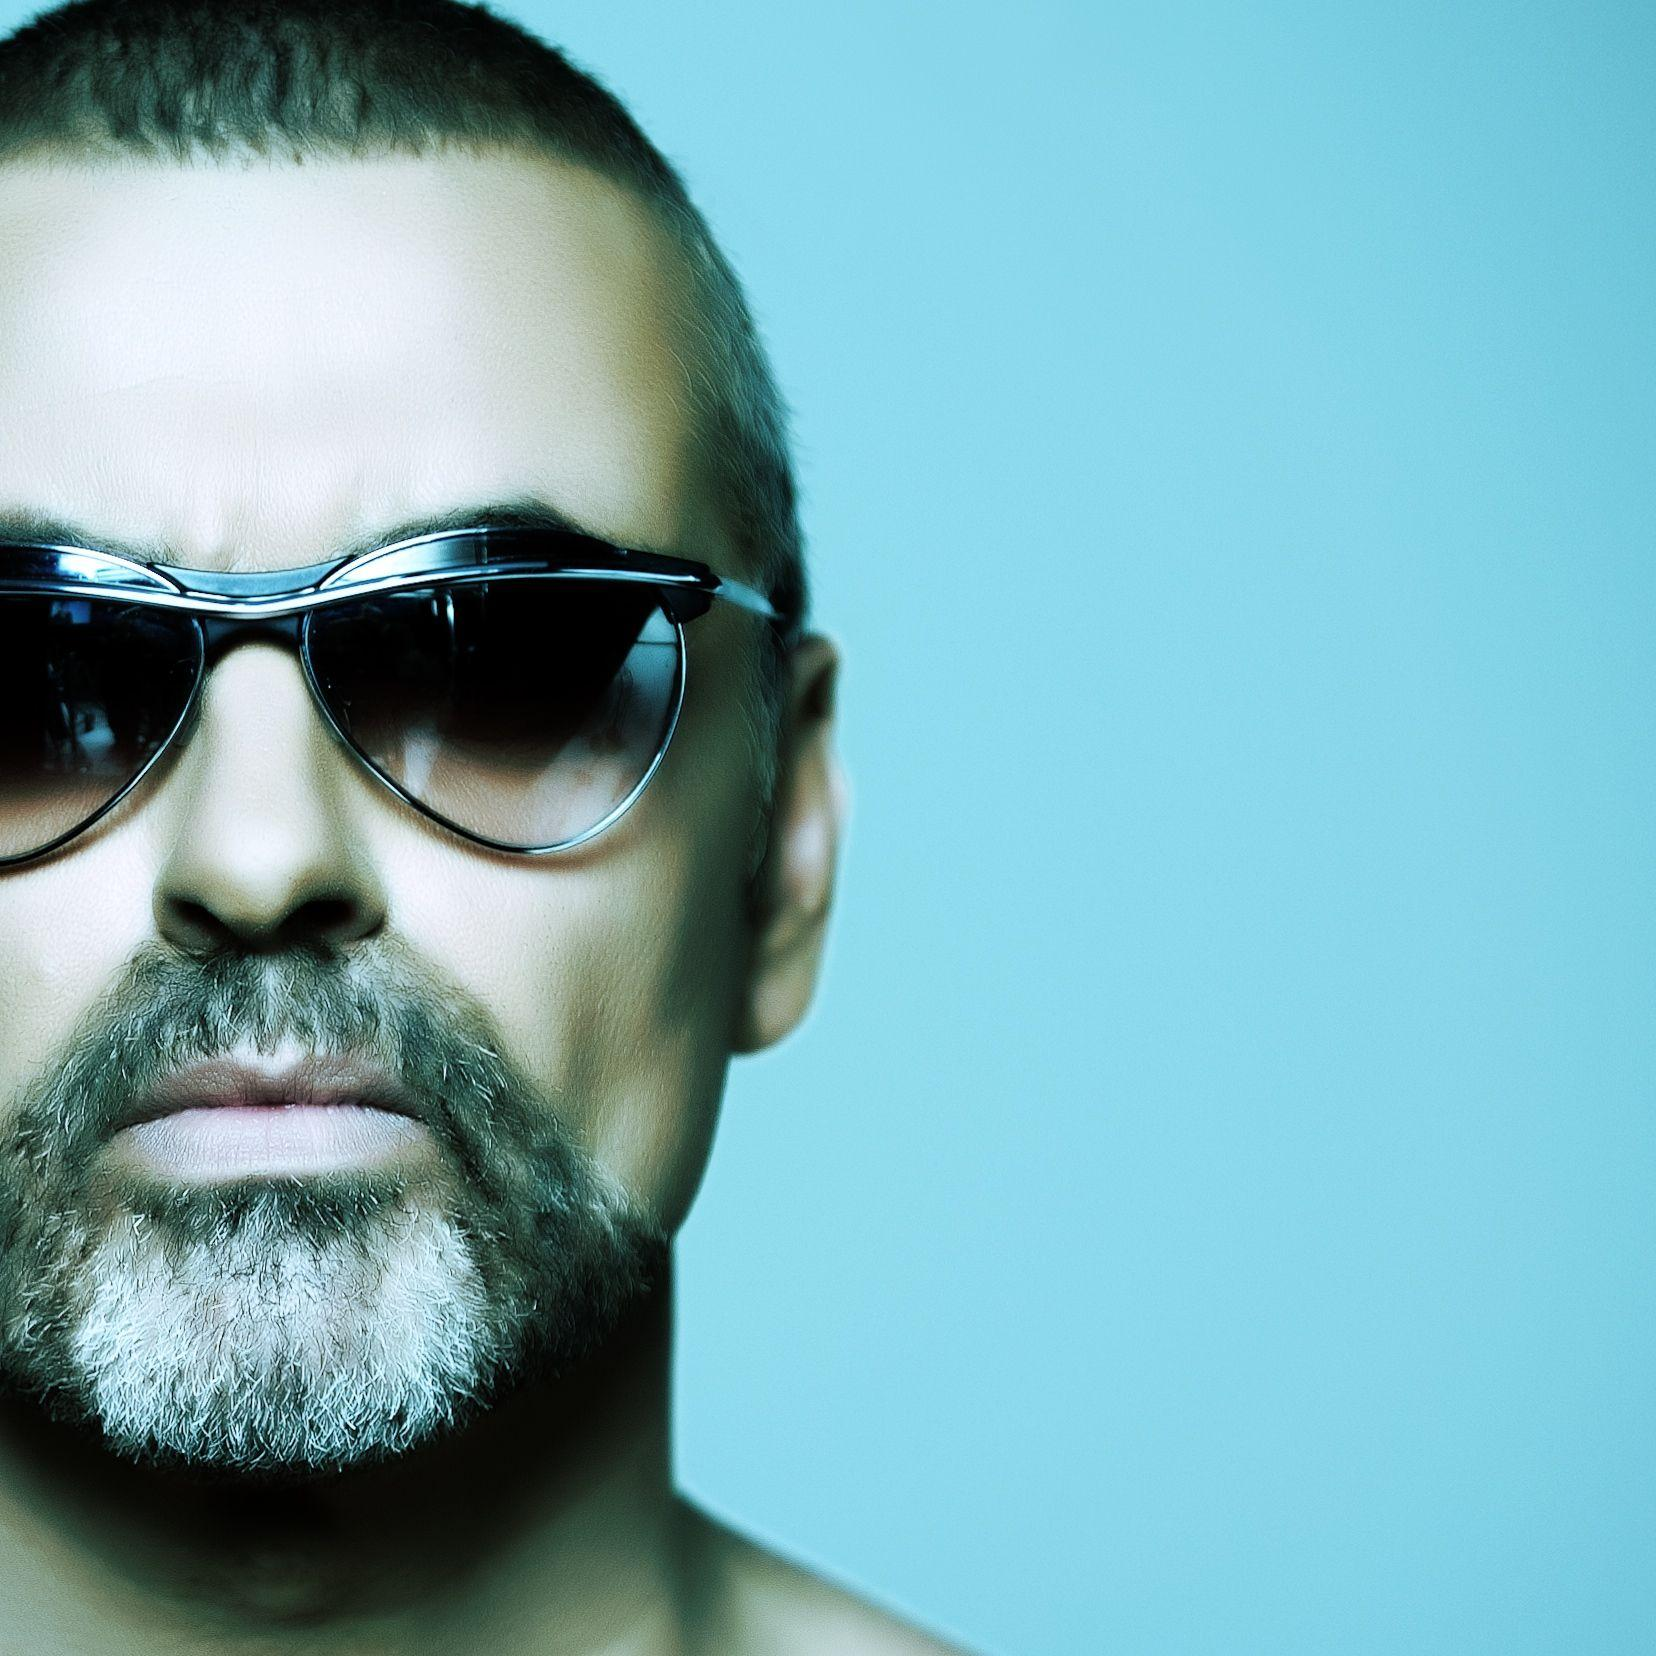 Image Blogs Hot: George Michael